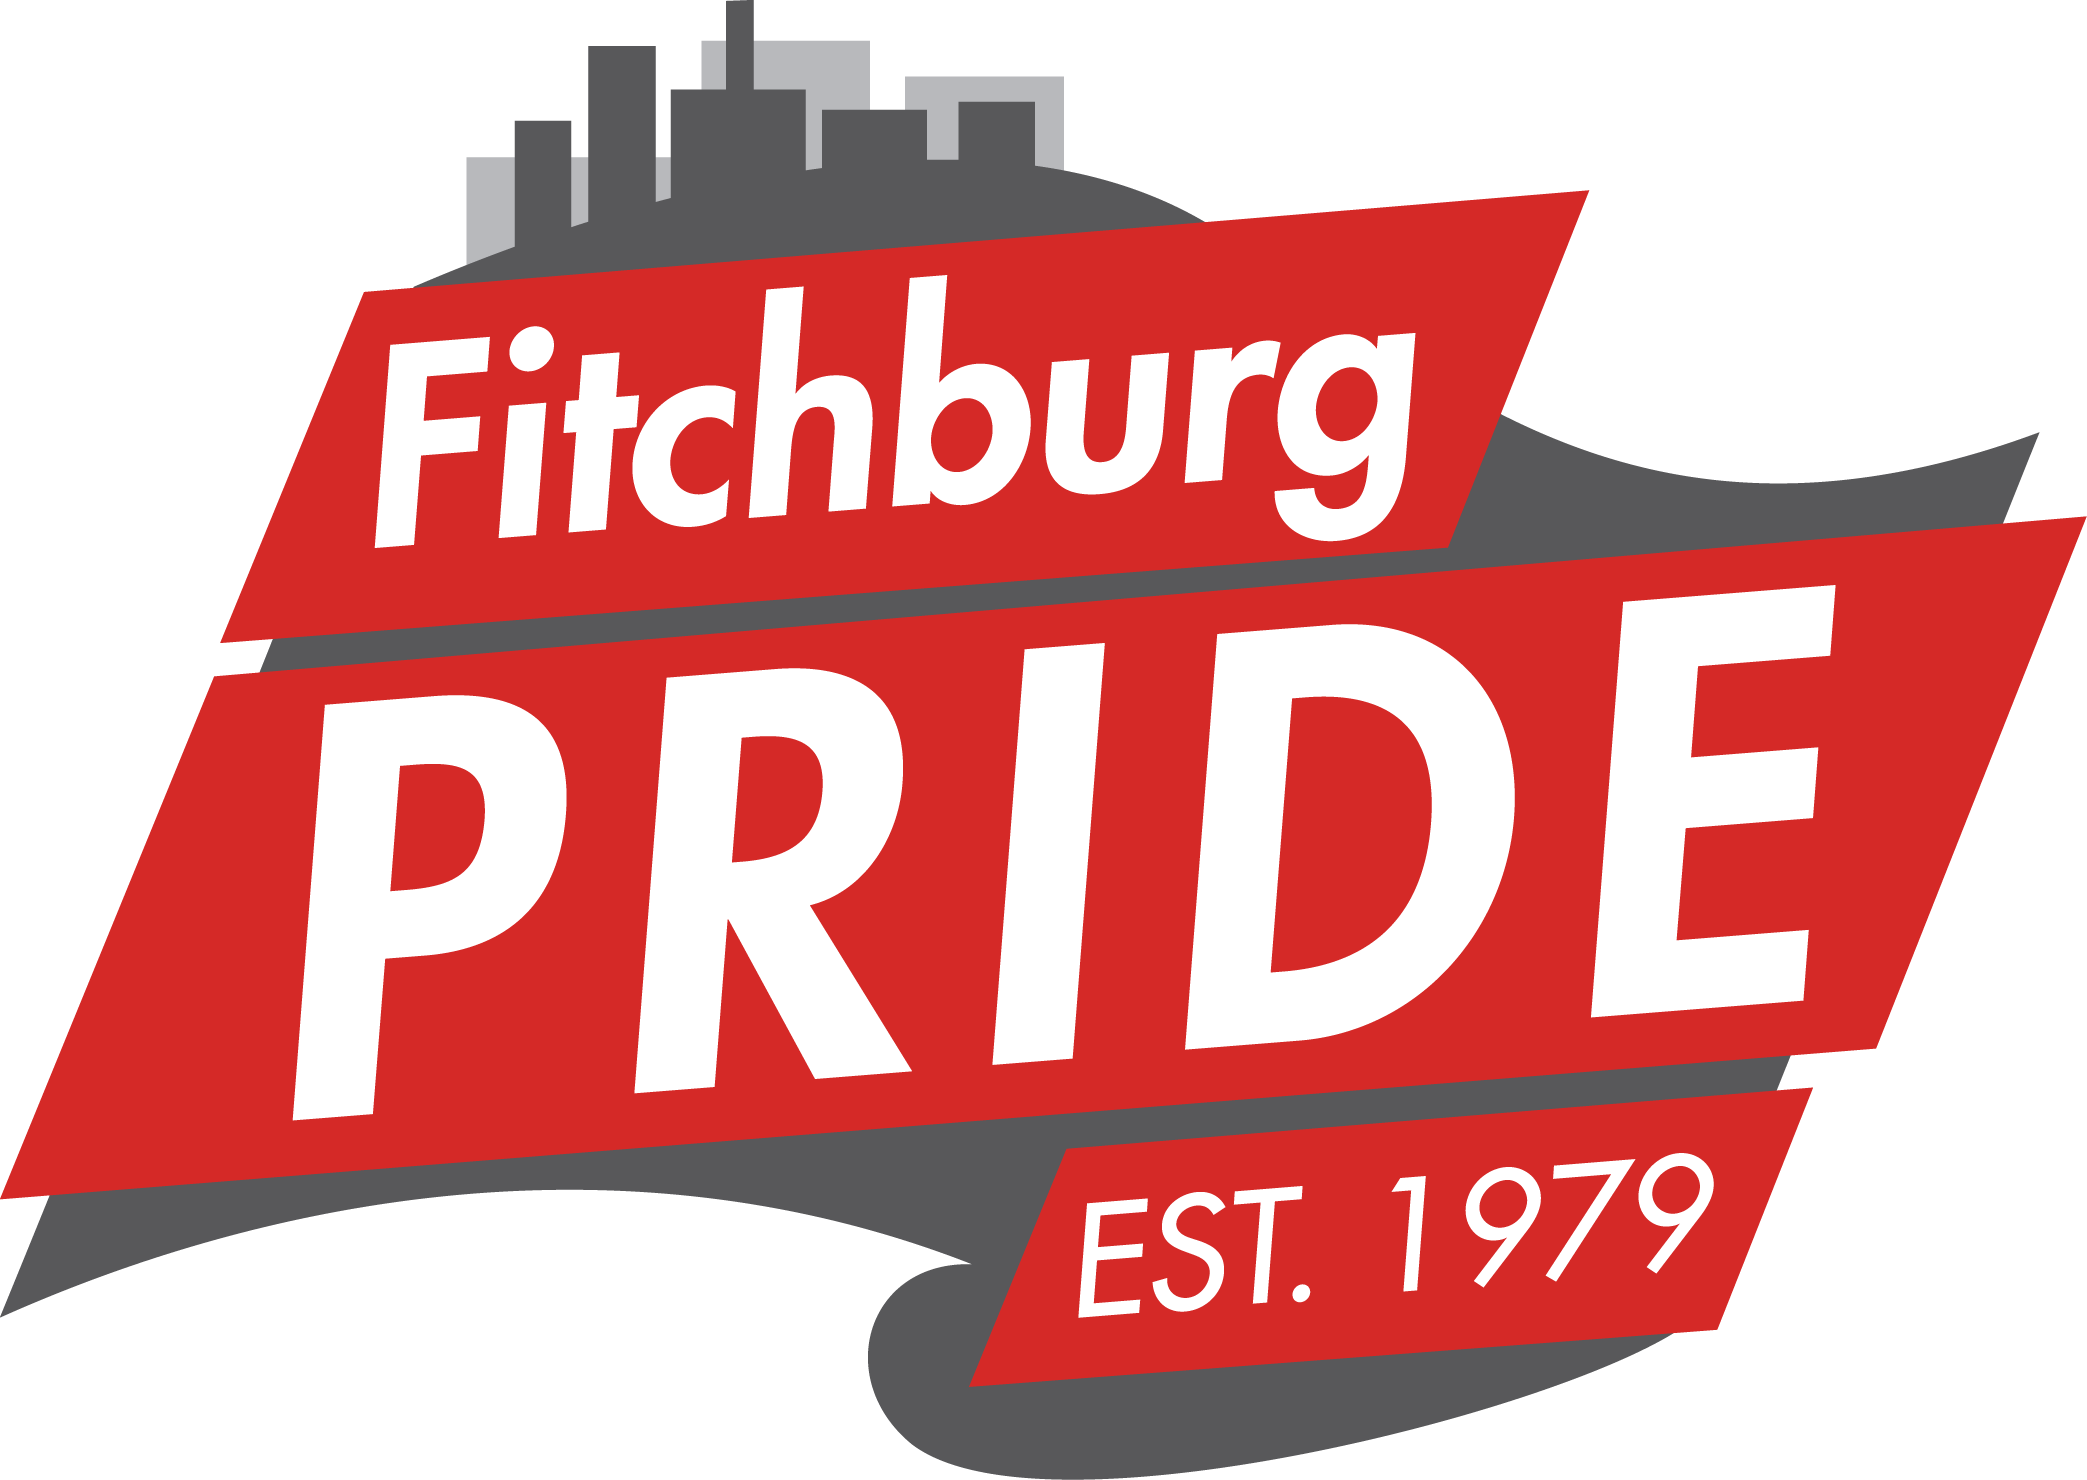 fitchburg pride logo.png